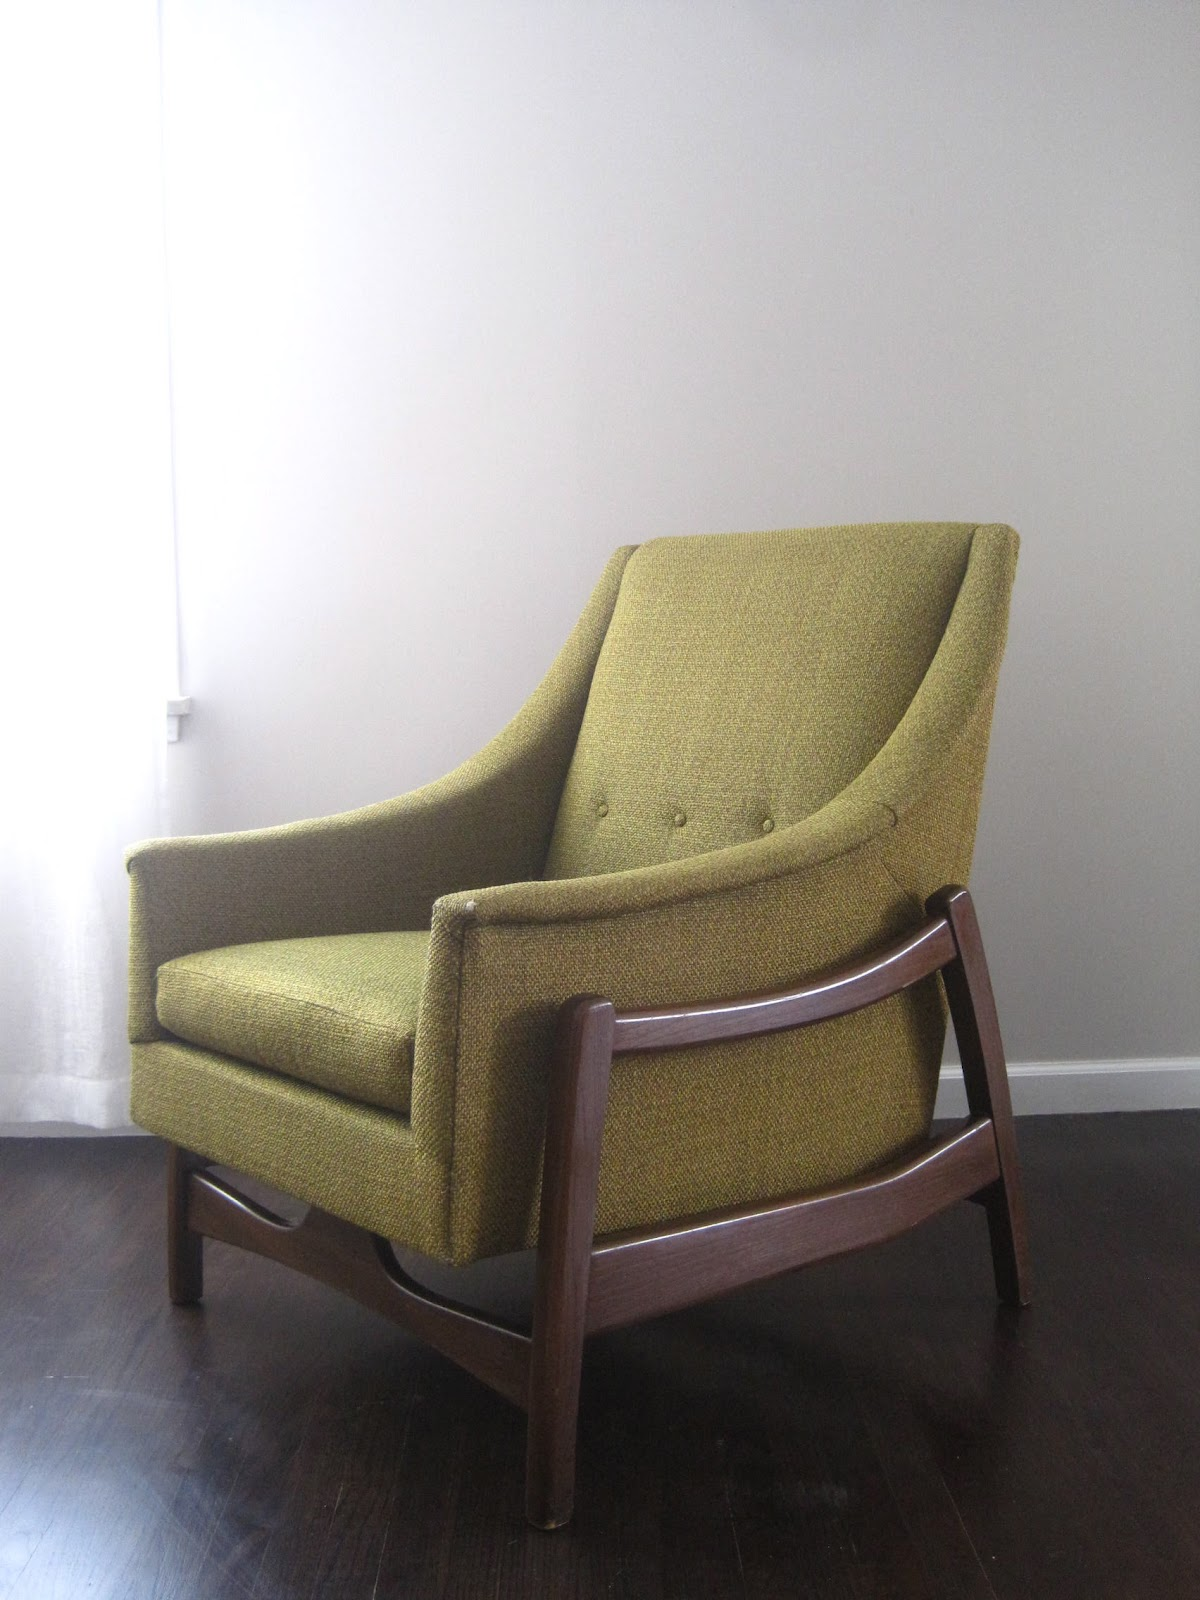 Rhan Vintage Mid Century Modern Blog Paoli Mid Century Rocking Lounge Chair Here and Gone